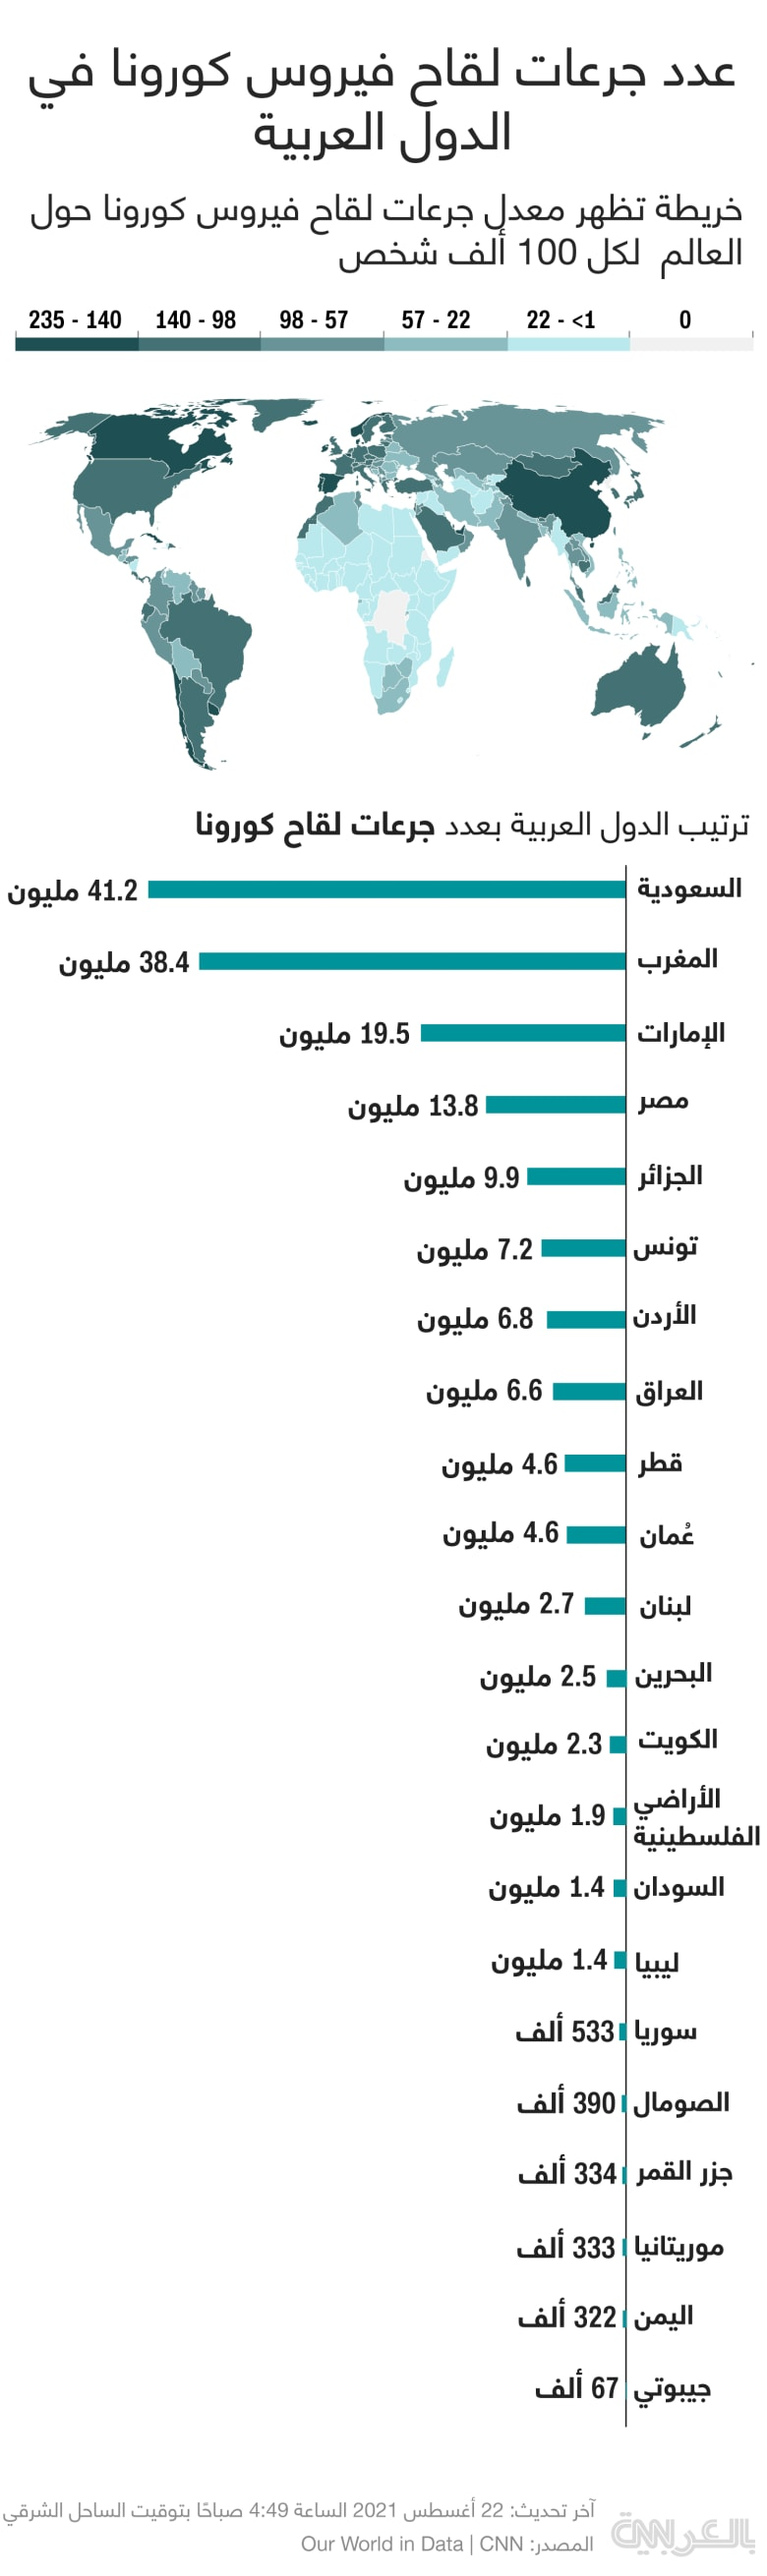 vaccination-rate-arab-countries-240921